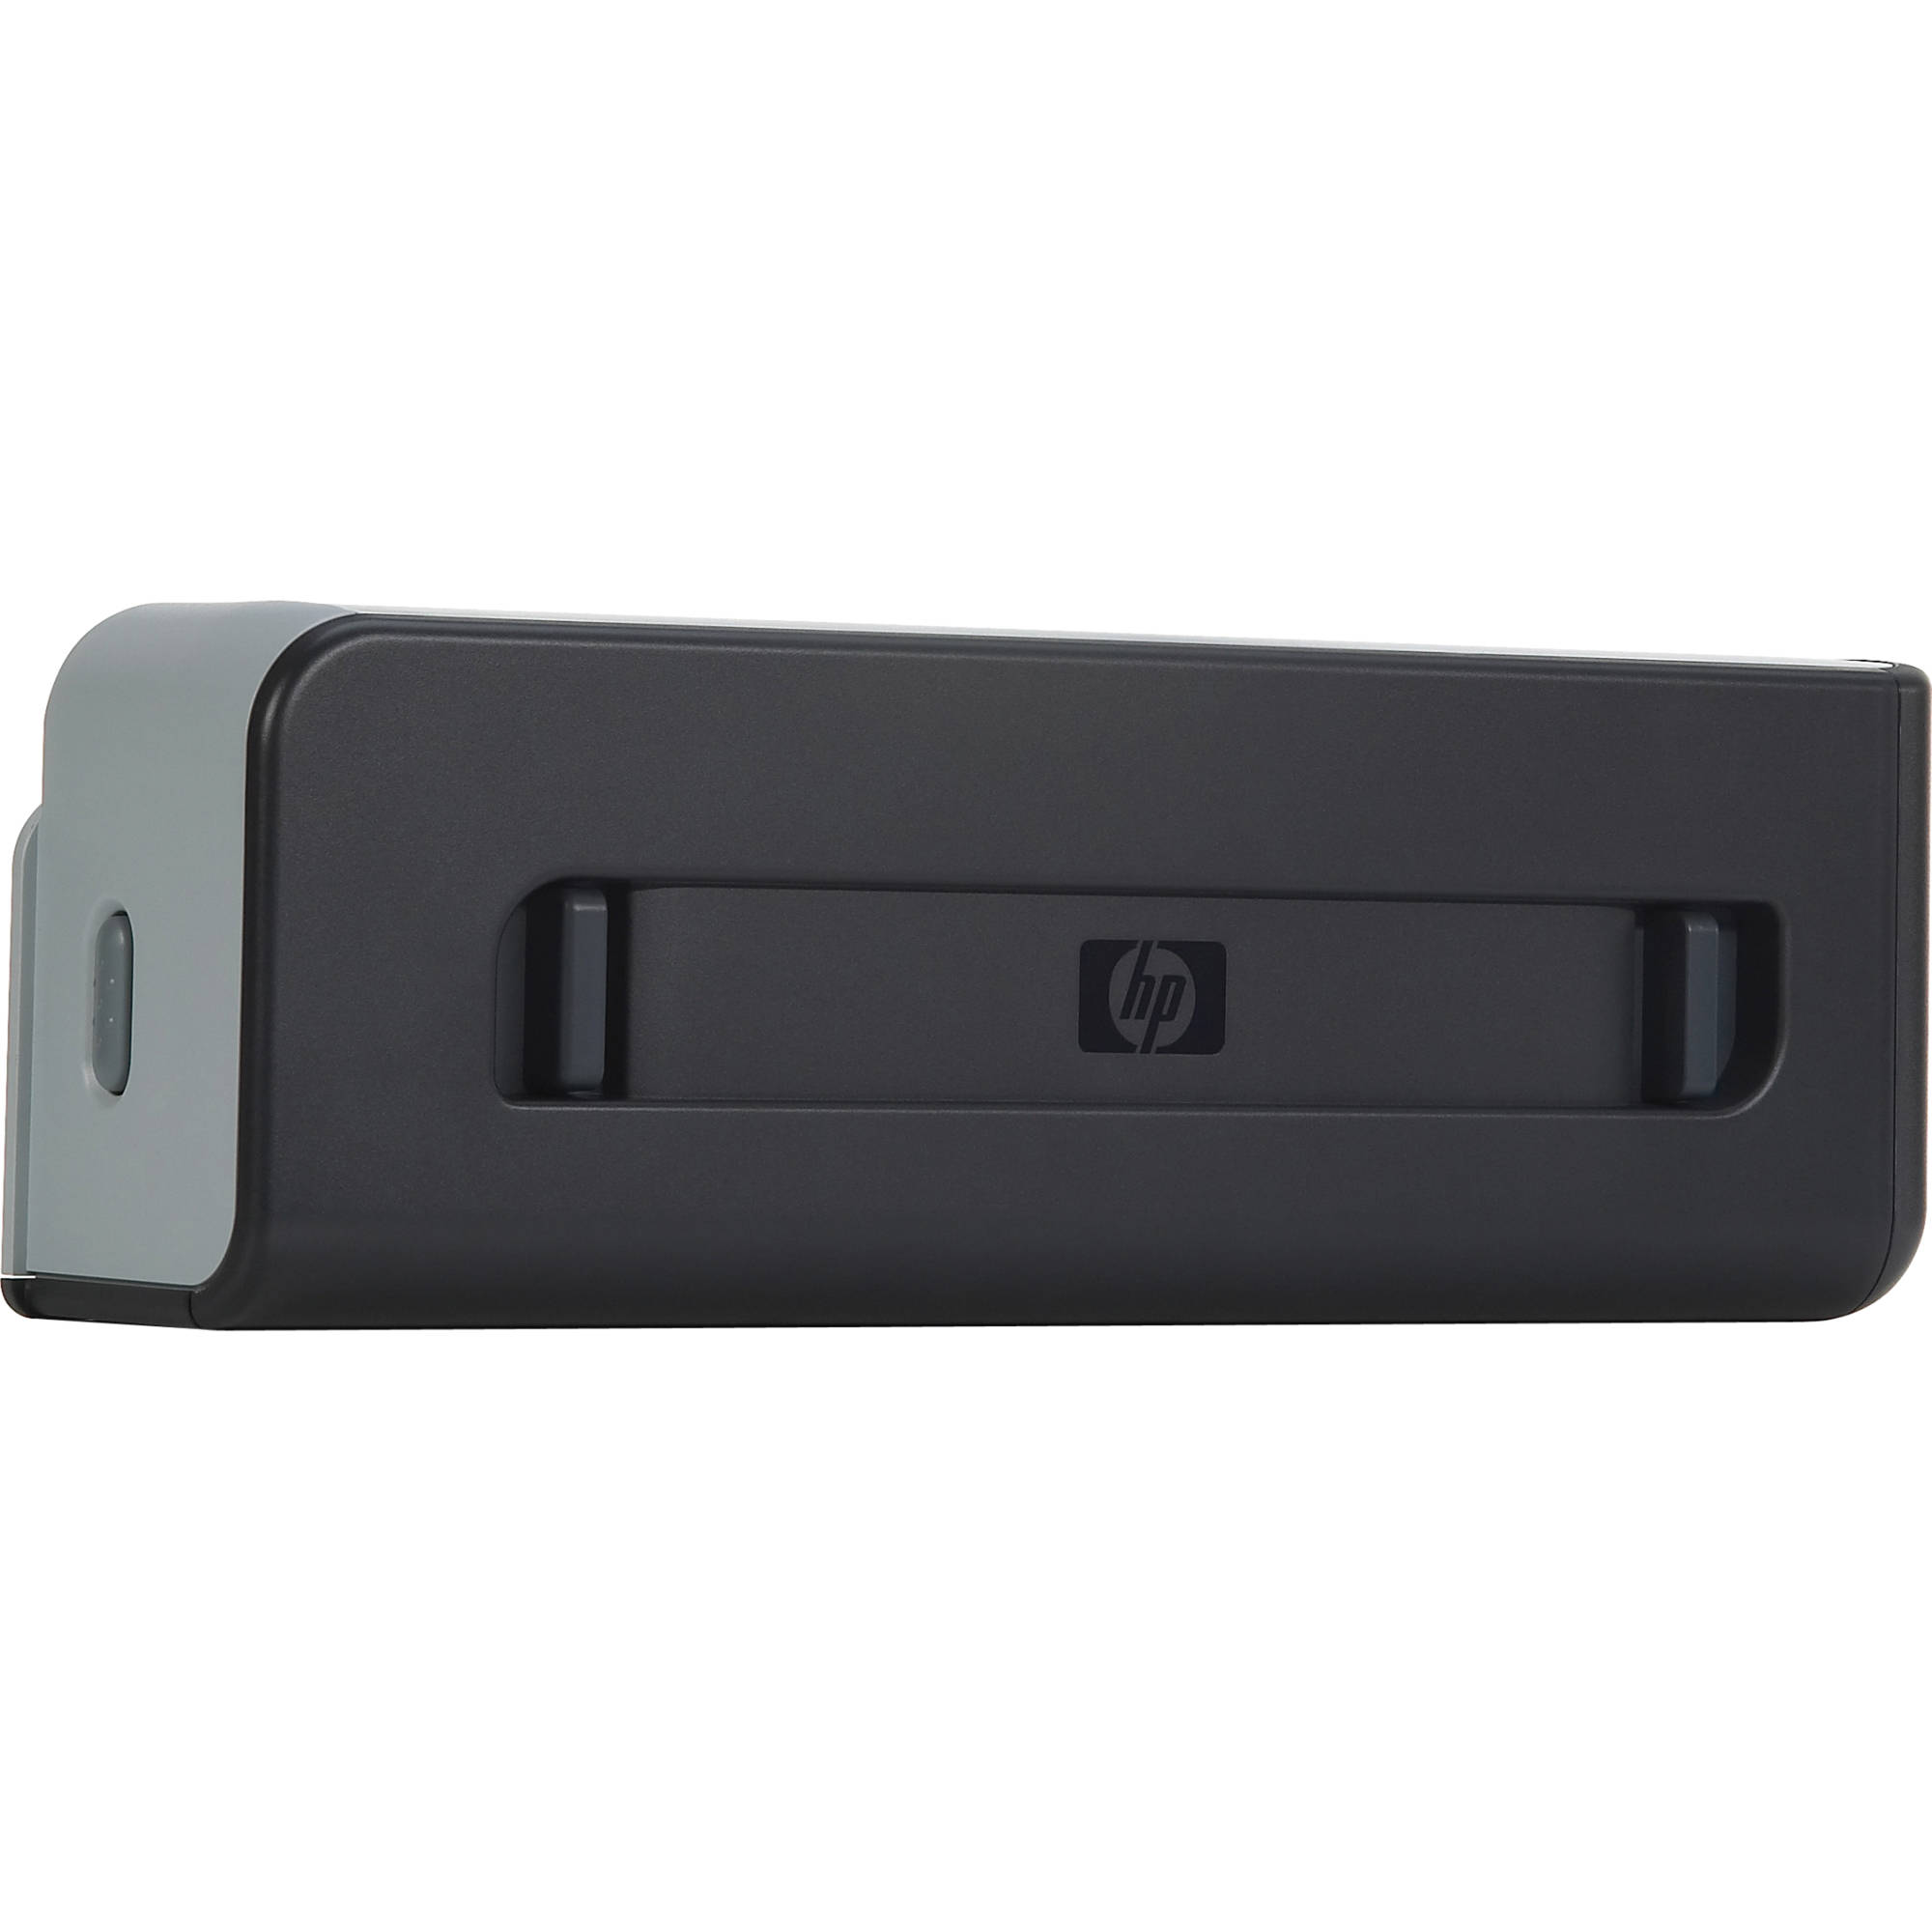 Hp Automatic Two Sided Printing Accessory For Officejet C7g18a